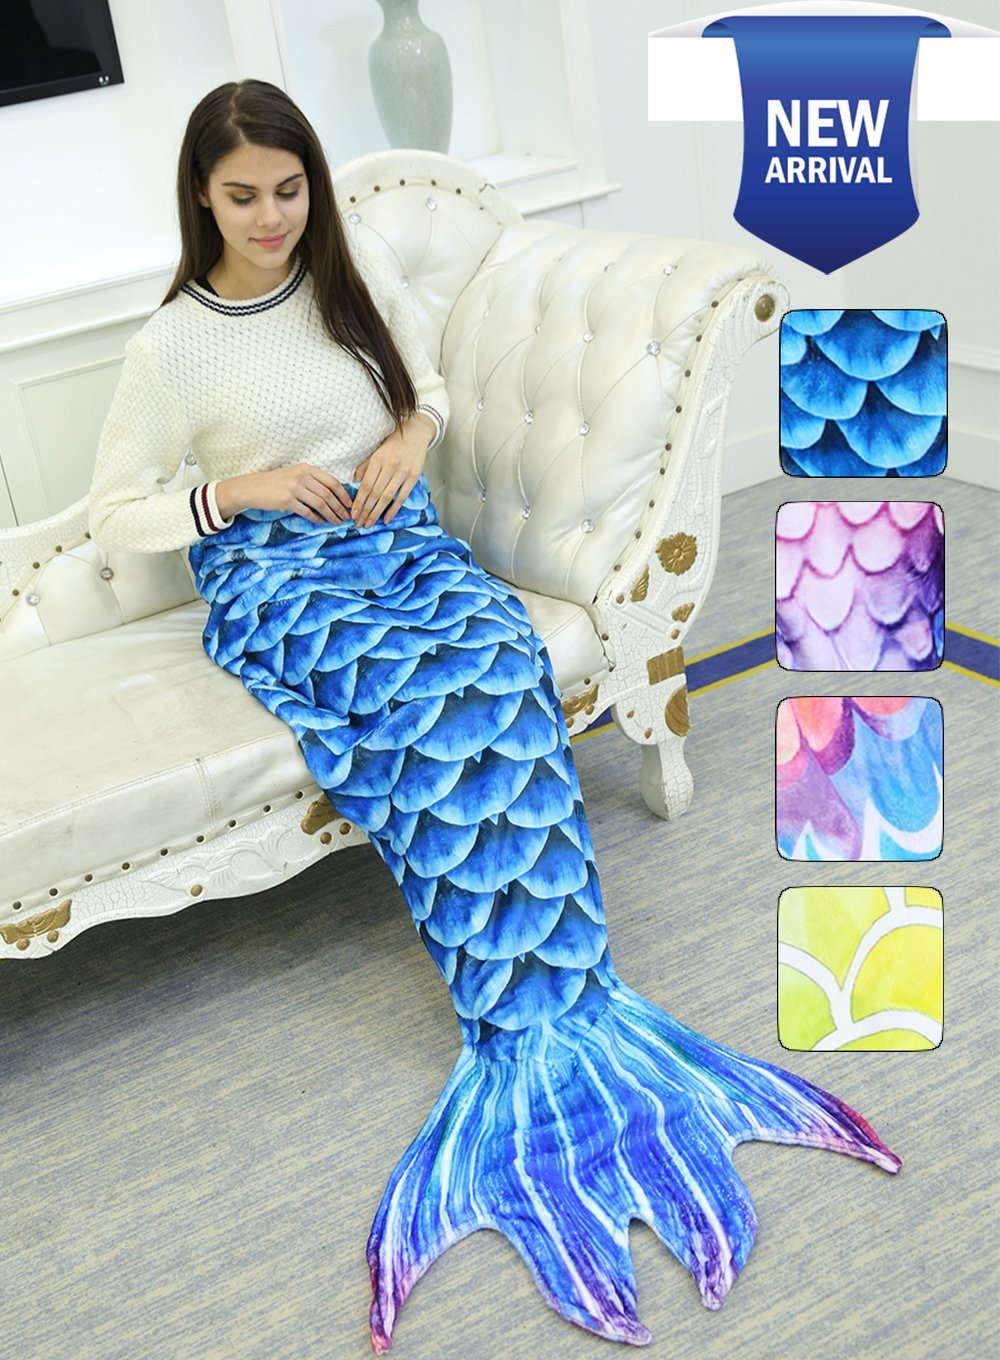 Mermaid Tail Blanket for Kids Adults Girls Women Coral Fleece Sleeping Bag Summer Air Condition Sofa Bed Towel Comforter for Indoor Home Winter Keep Warm Gifts Birthday Christmas (B-Adults Blue Fish)